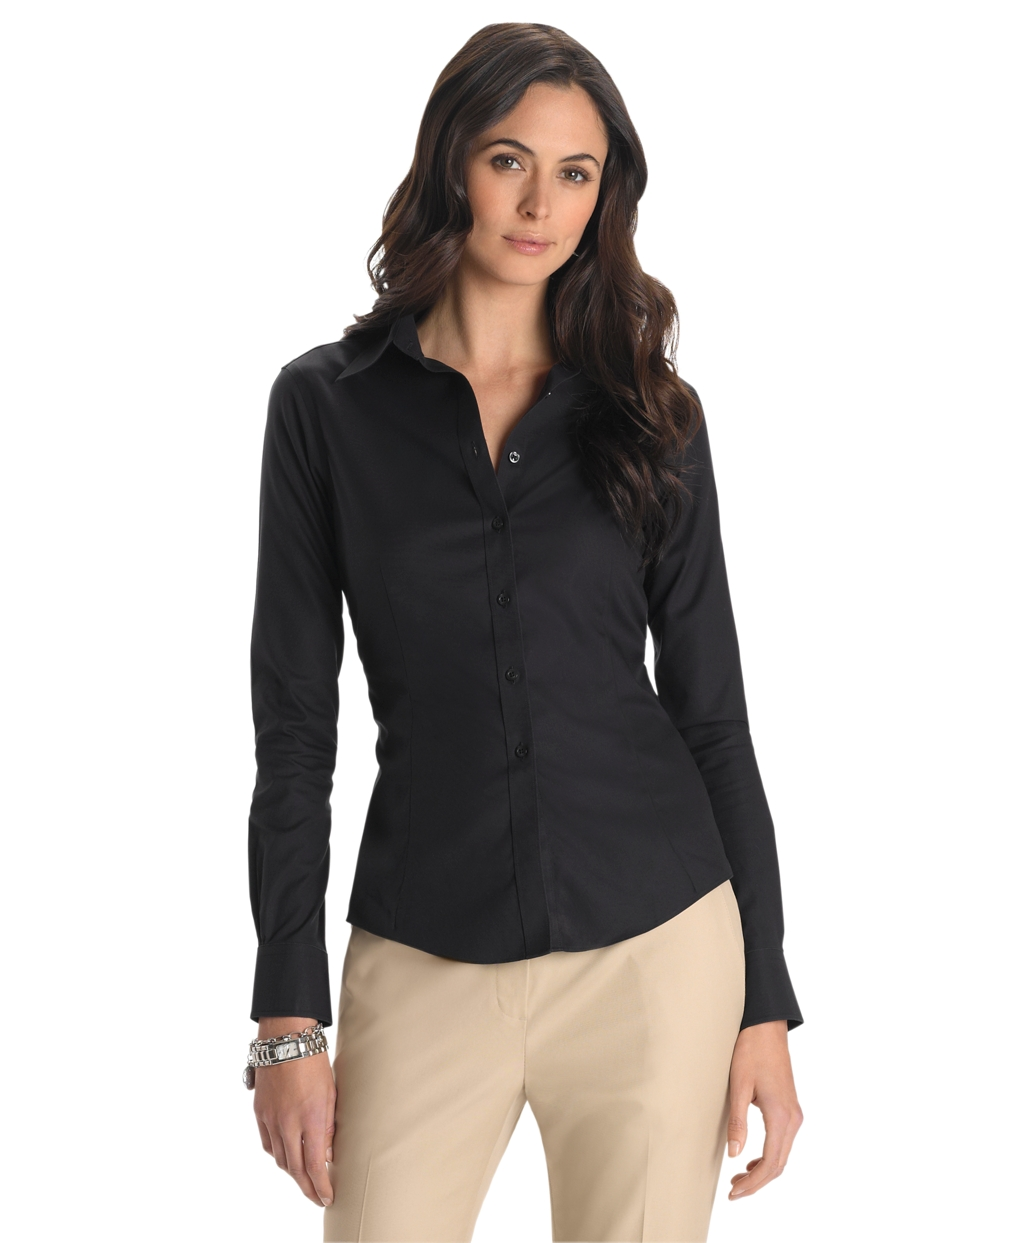 Women's Non-Iron Tailored Fit Dress Shirt | Brooks Brothers